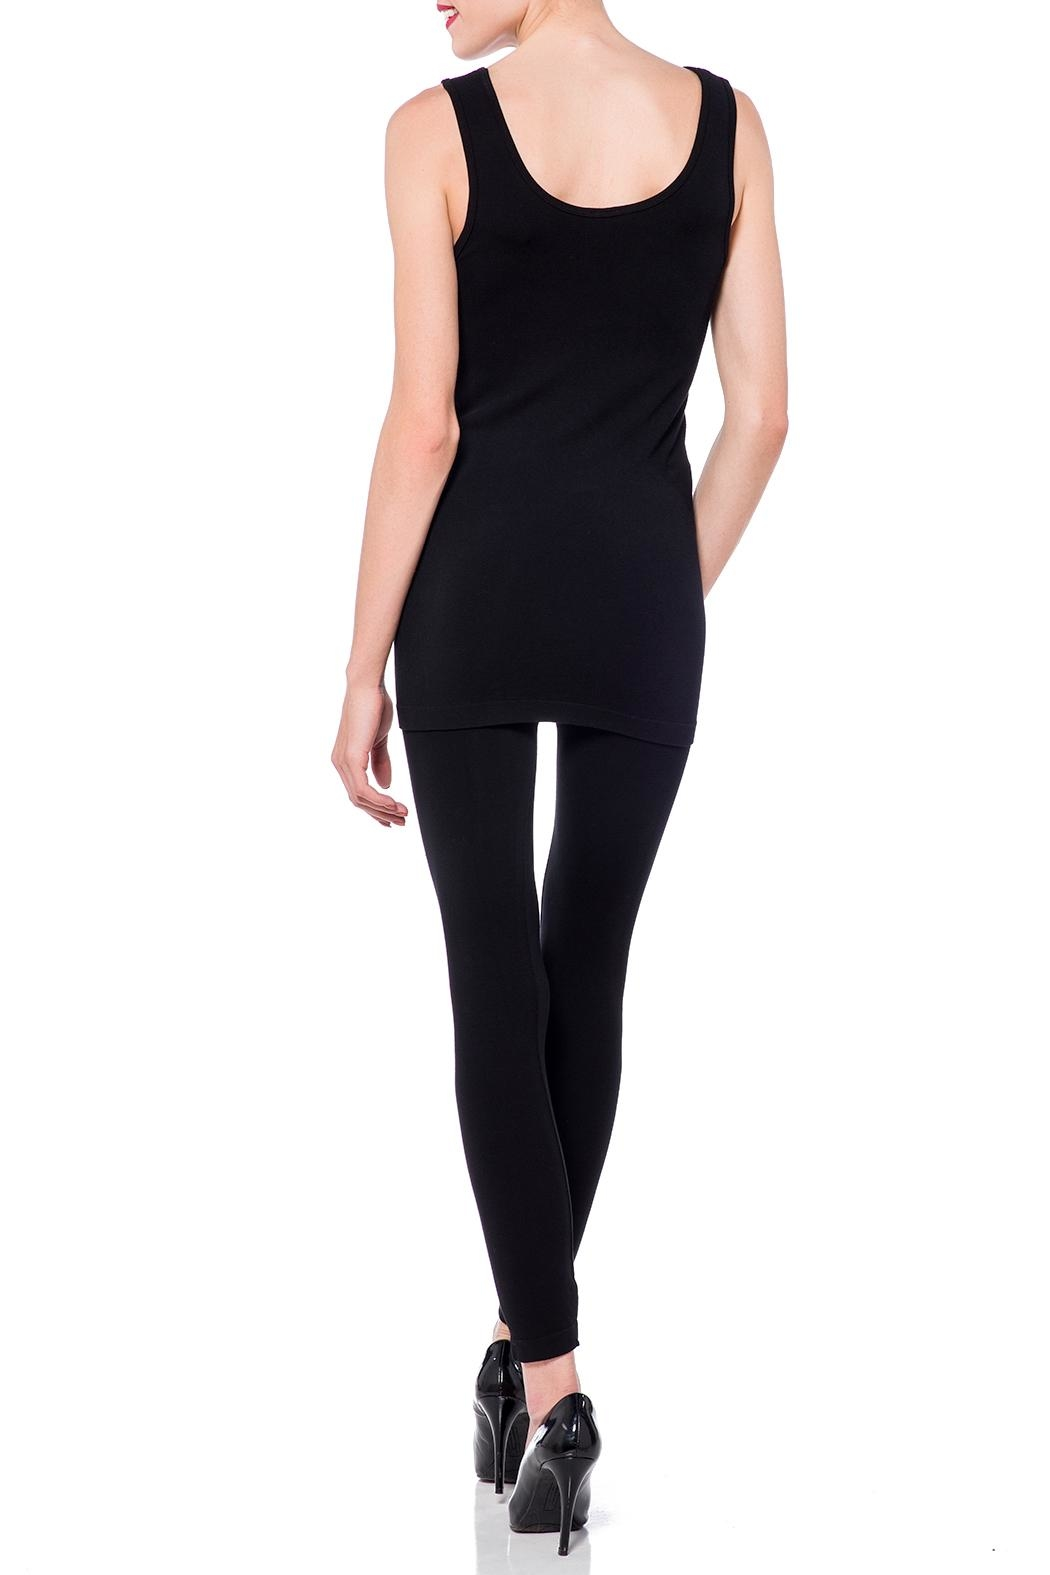 Cest Moi Black Bamboo Tank - Back Cropped Image